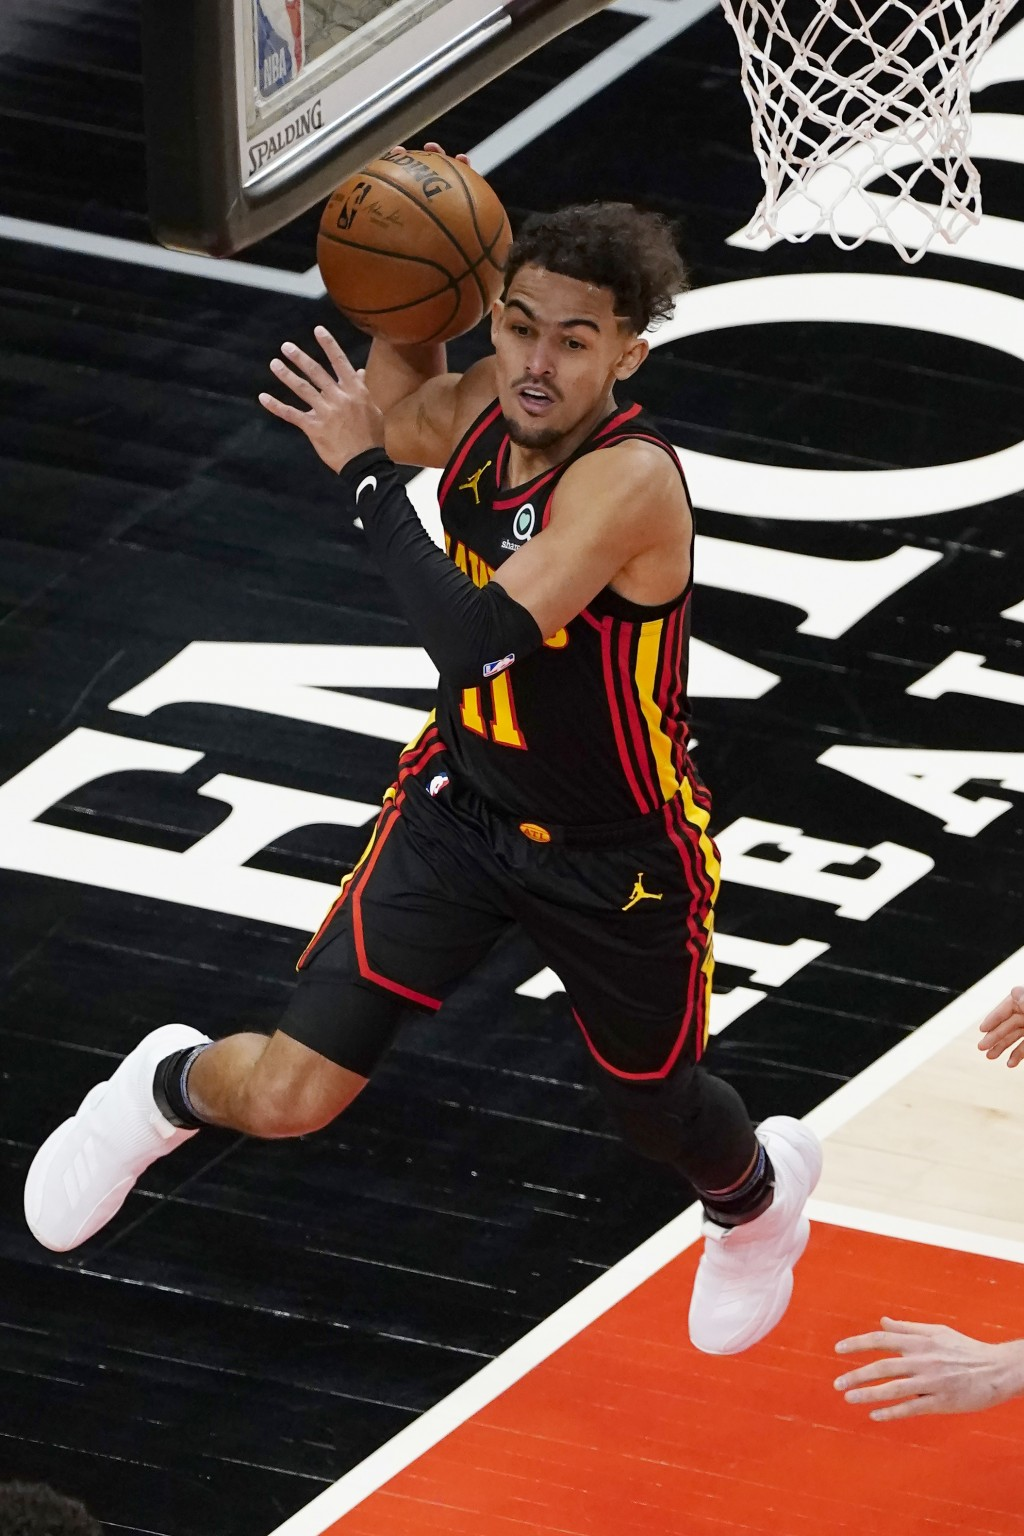 Atlanta Hawks guard Trae Young (11) keeps the ball in play during the first half of the team's NBA basketball game against the Denver Nuggets on Sunda...